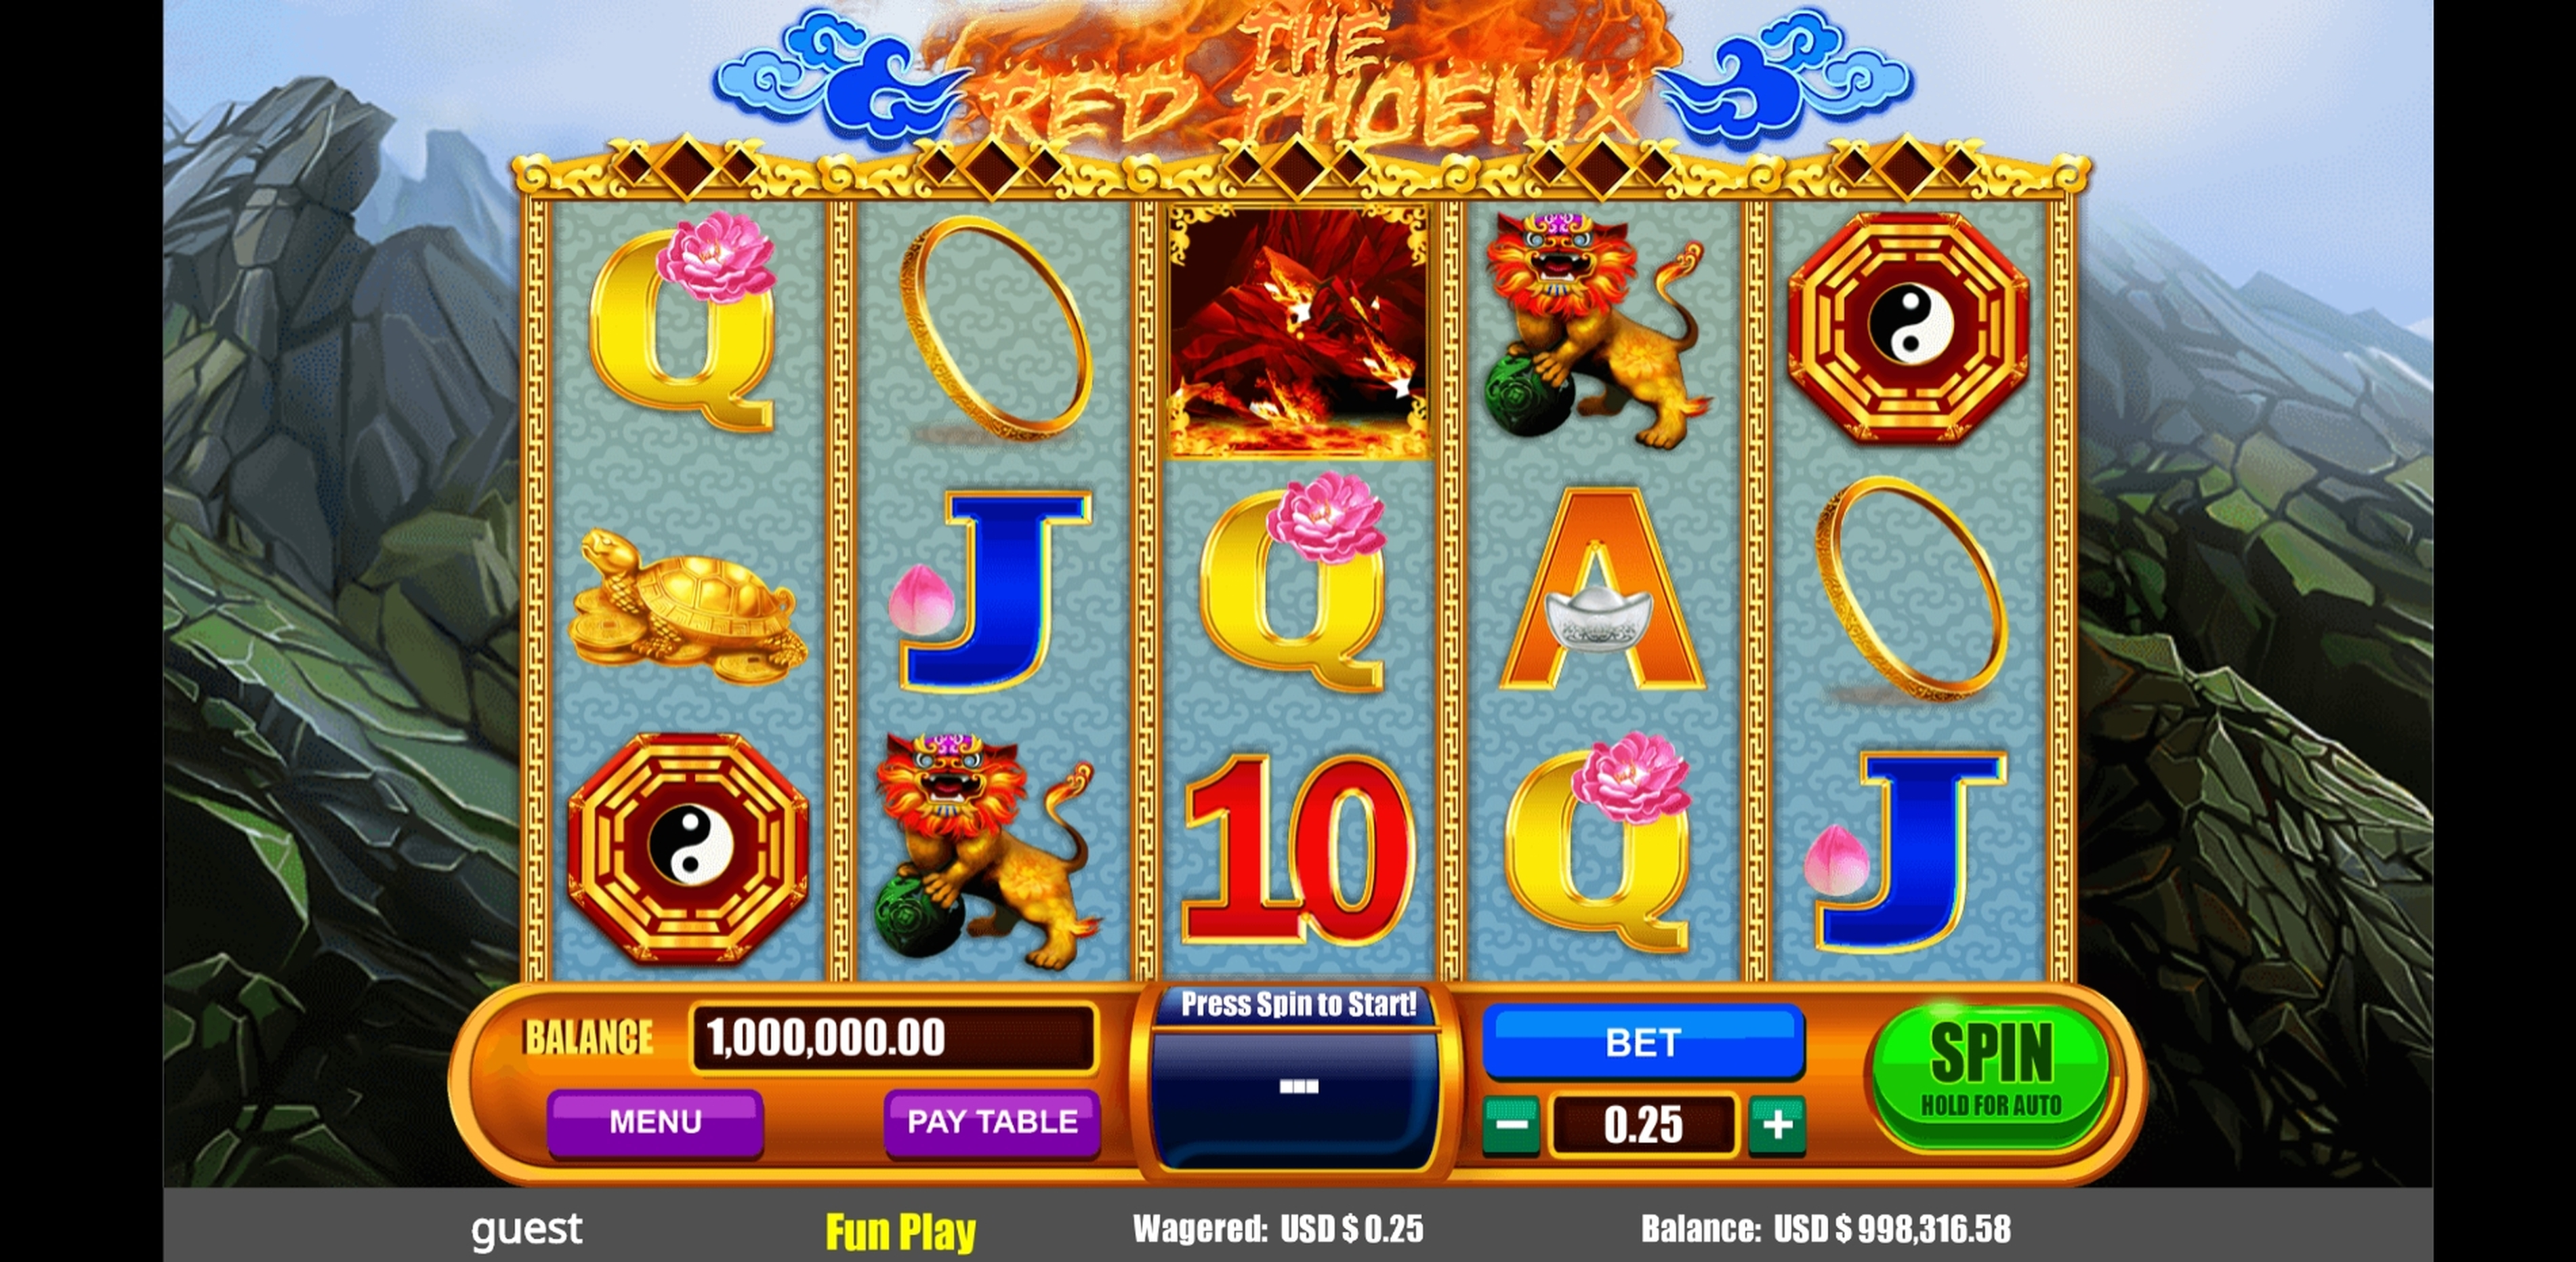 Reels in The Red Phoenix Slot Game by August Gaming